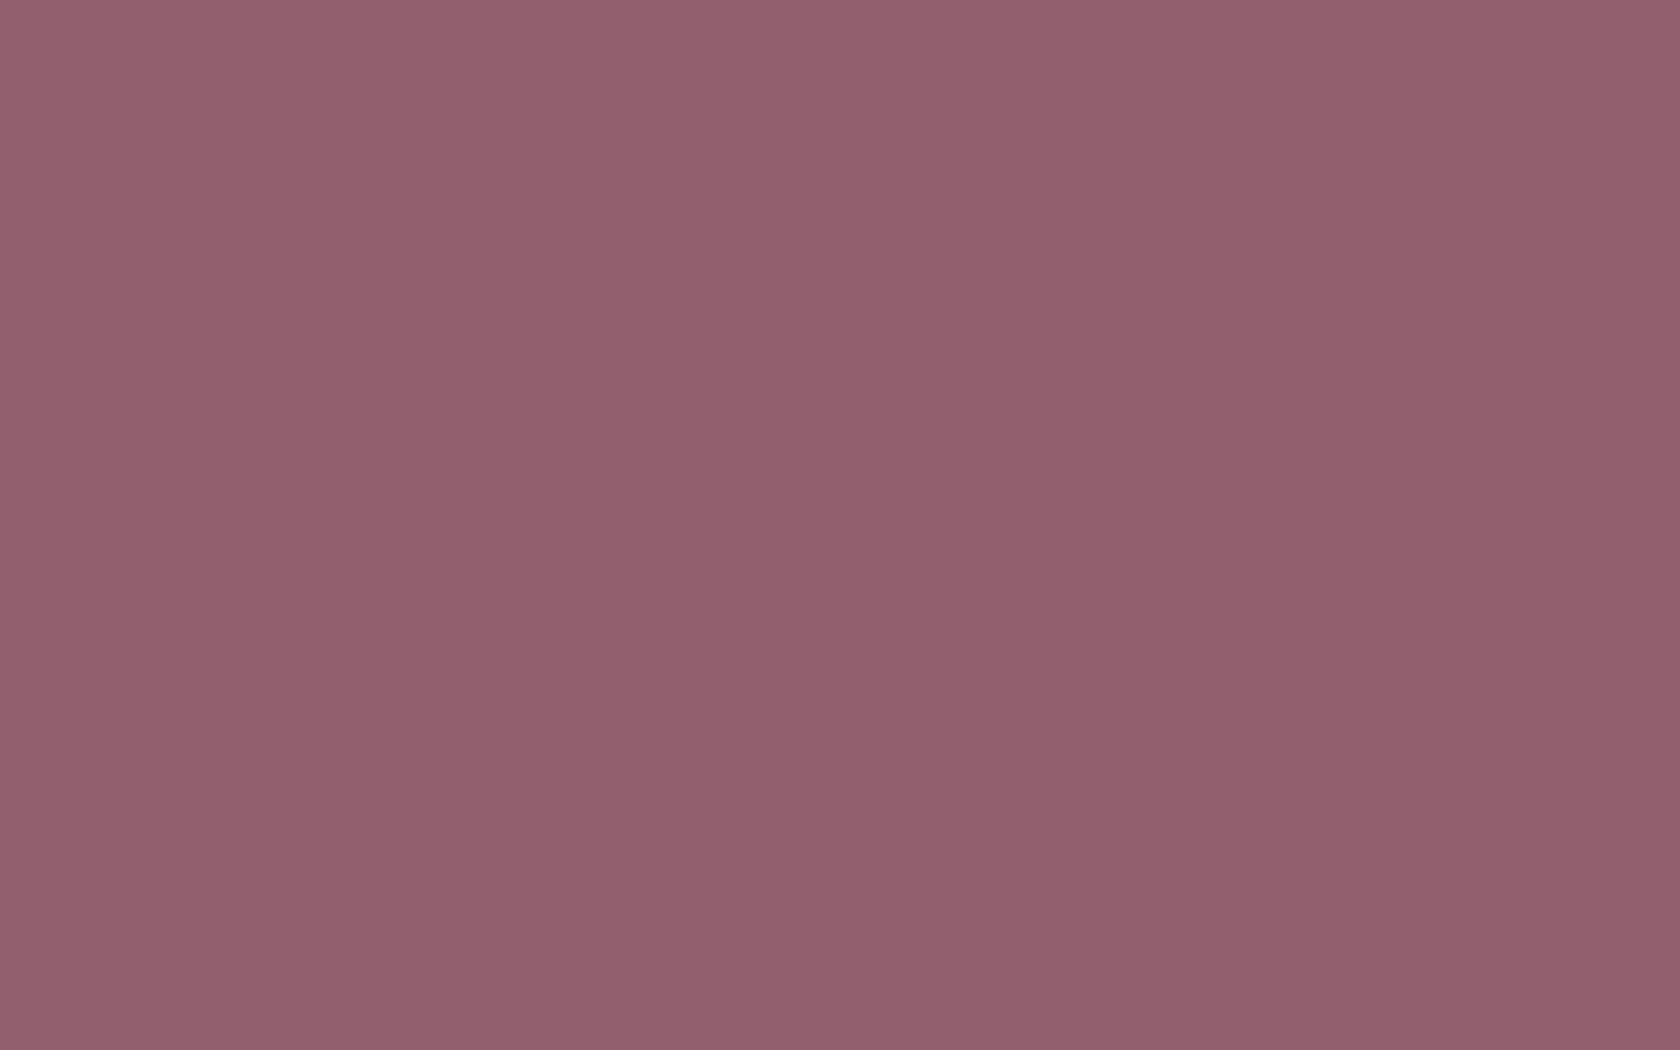 1680x1050 Raspberry Glace Solid Color Background